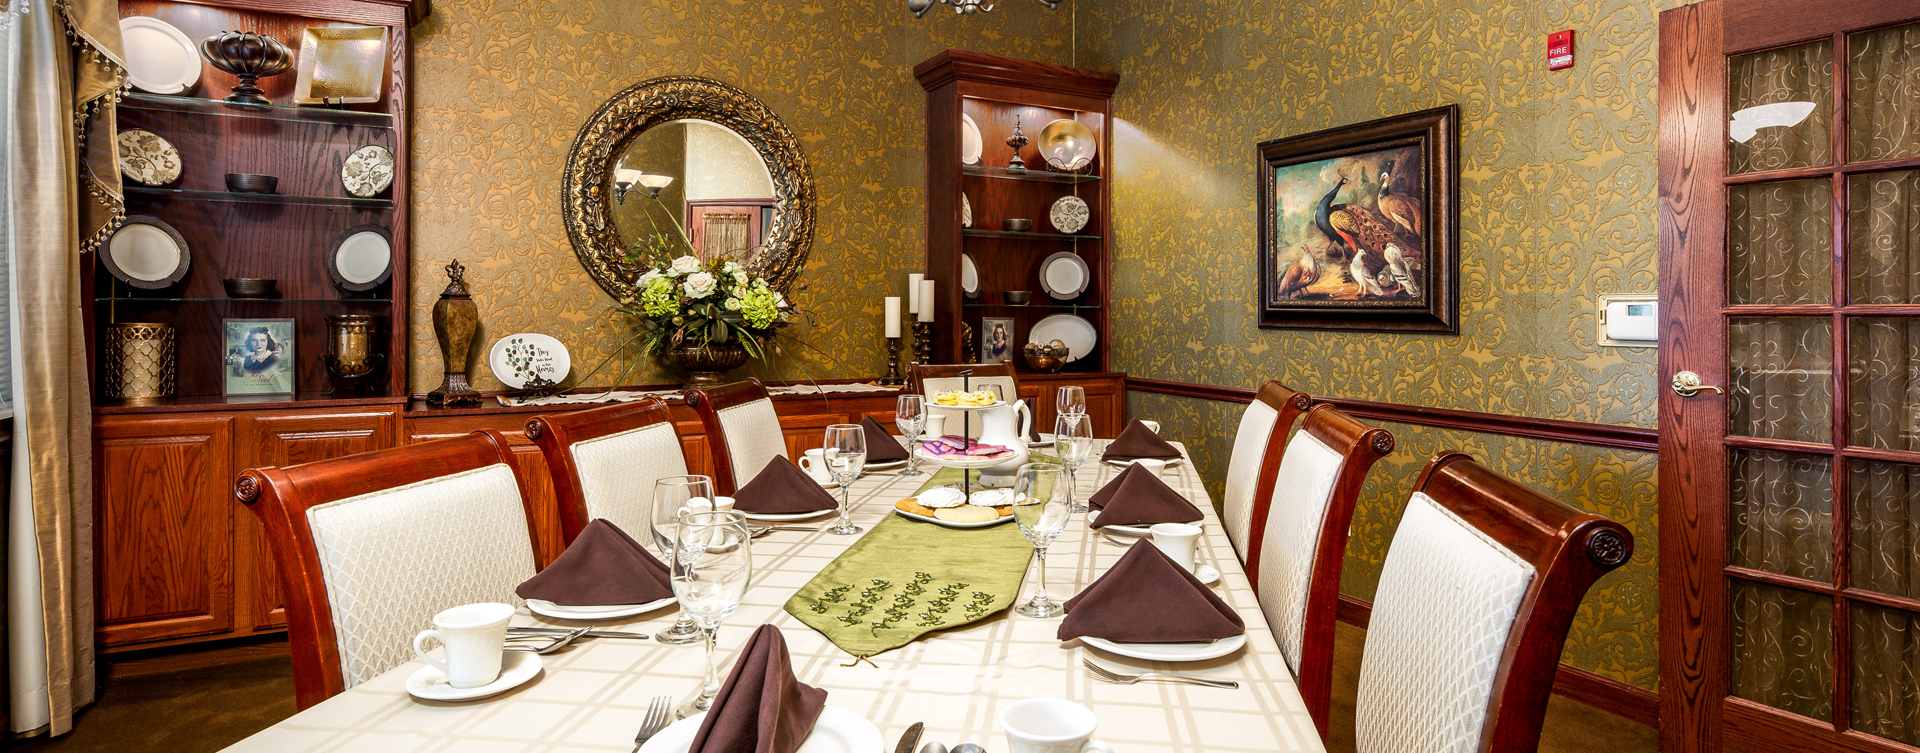 Have fun with themed and holiday meals in the private dining room at Bickford of Battle Creek